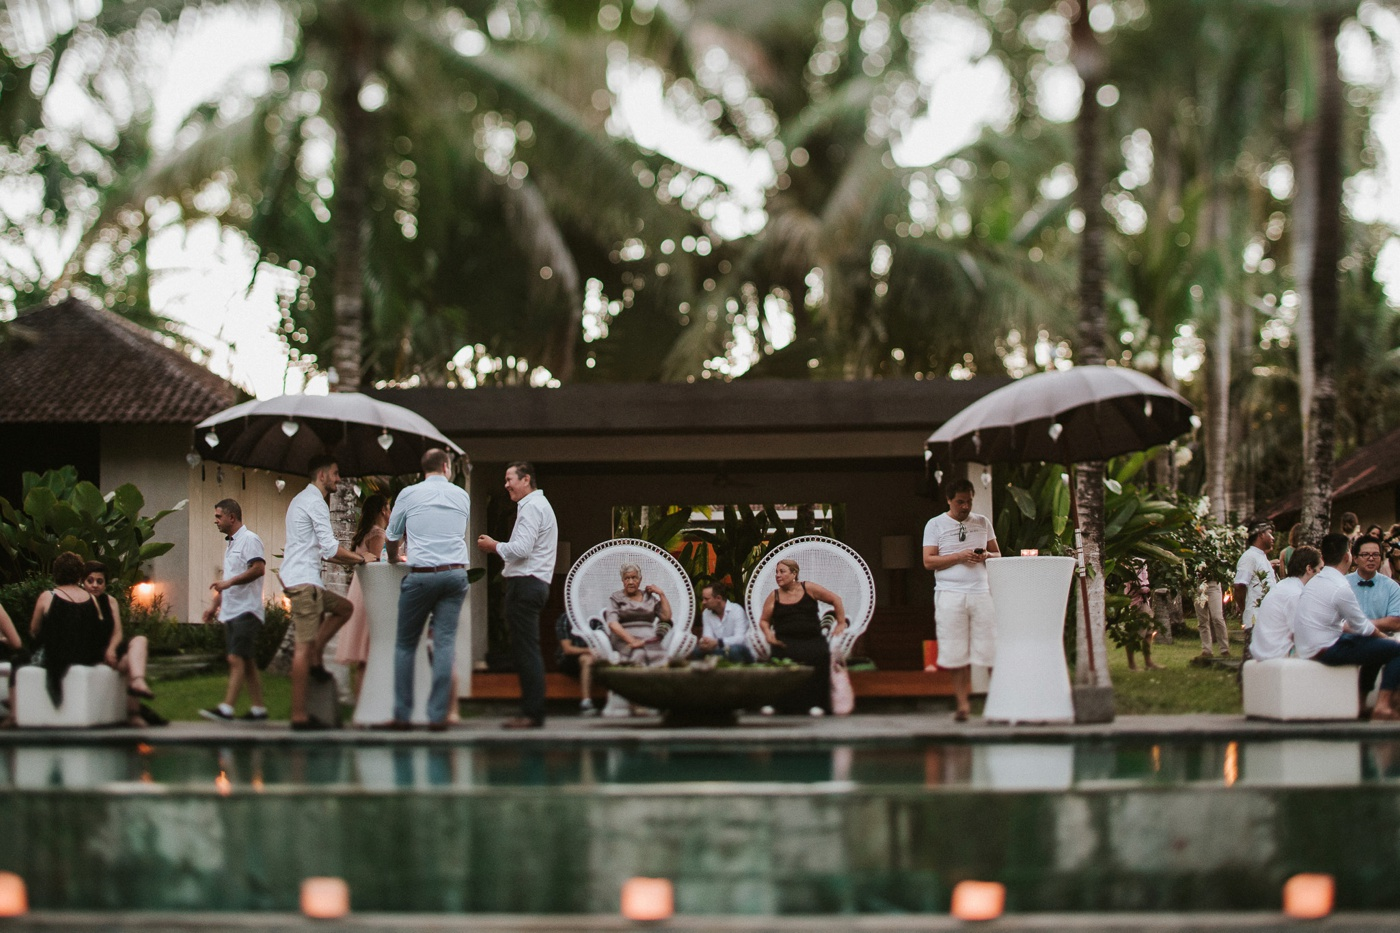 Deb-Ibs_Bali-Tropical-Relaxed-Wedding_Destination-Wedding-Photography_Melbourne-Wedding-Photographer_101